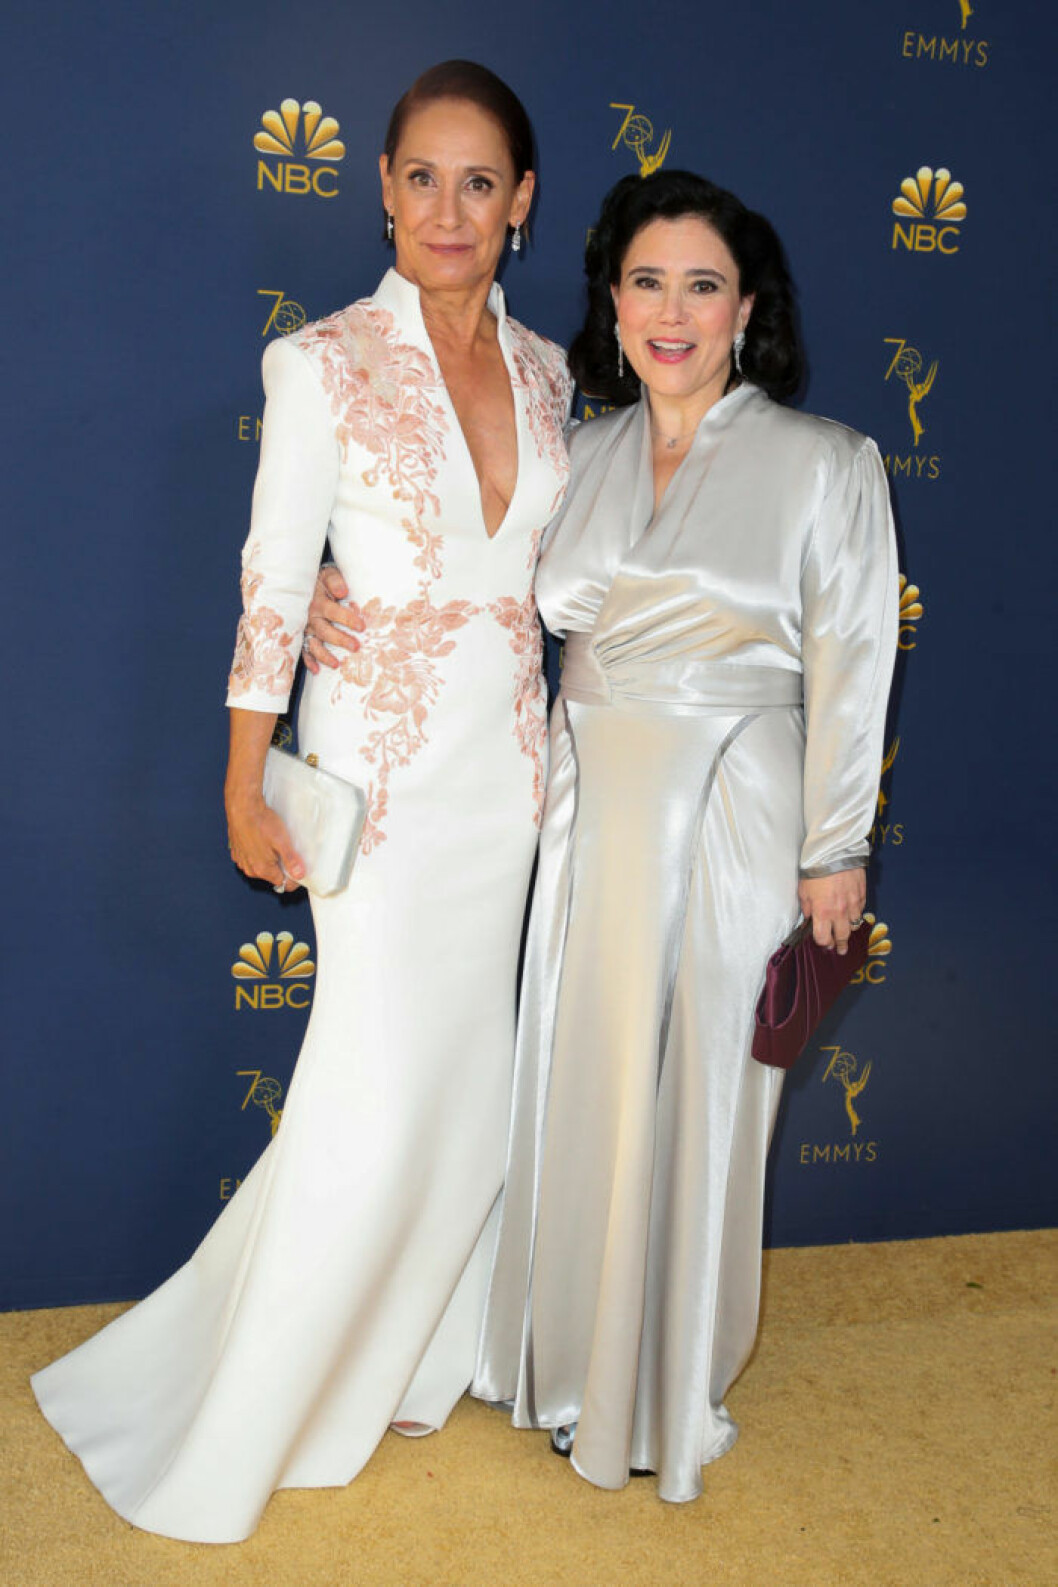 Laurie Metcalf and Alex Borstein Emmygalan 2018